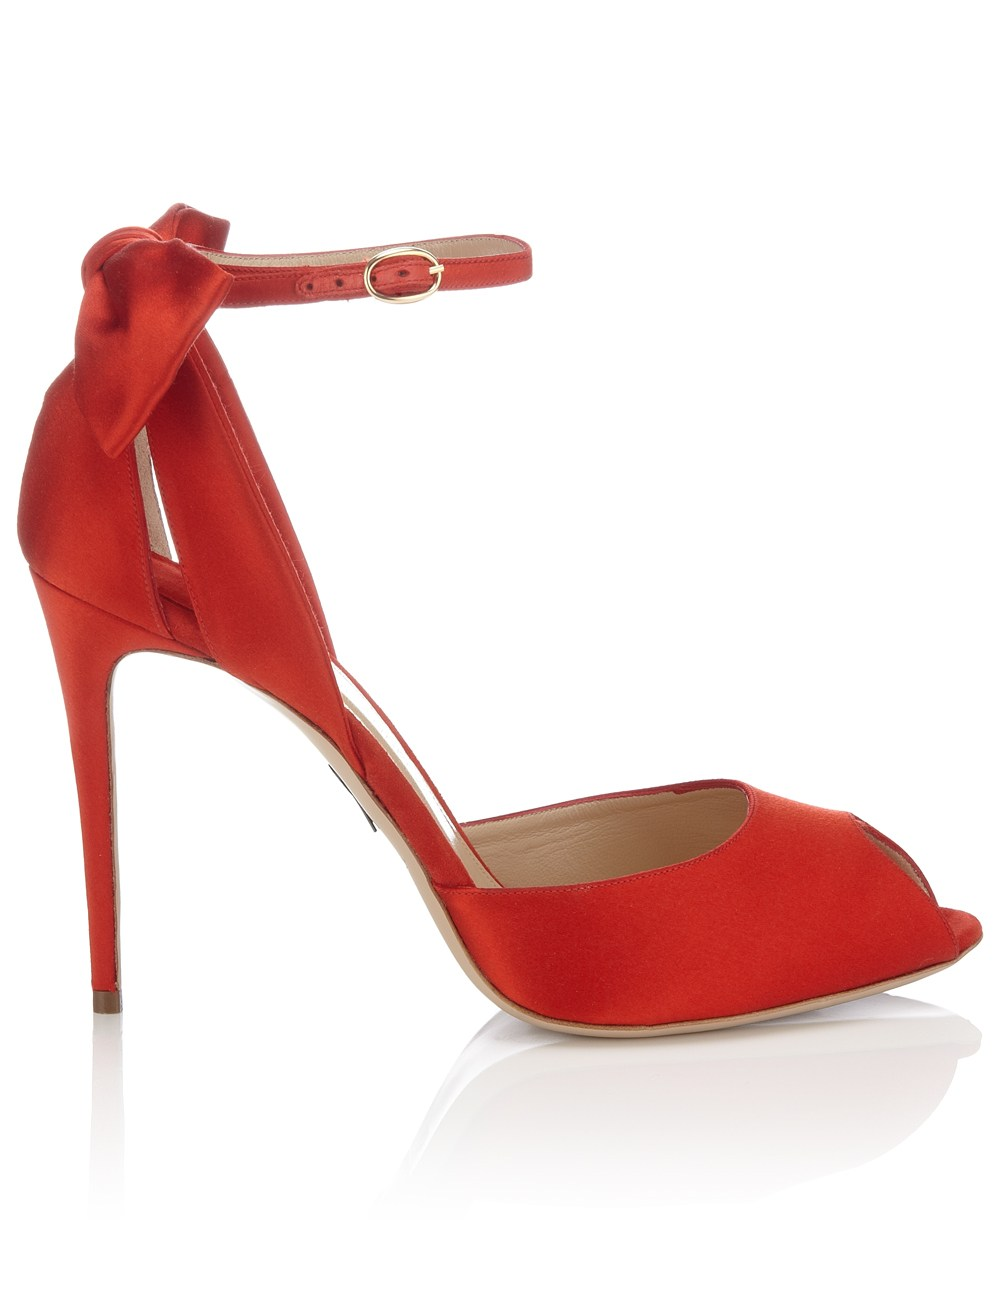 Red satin fatales sandals